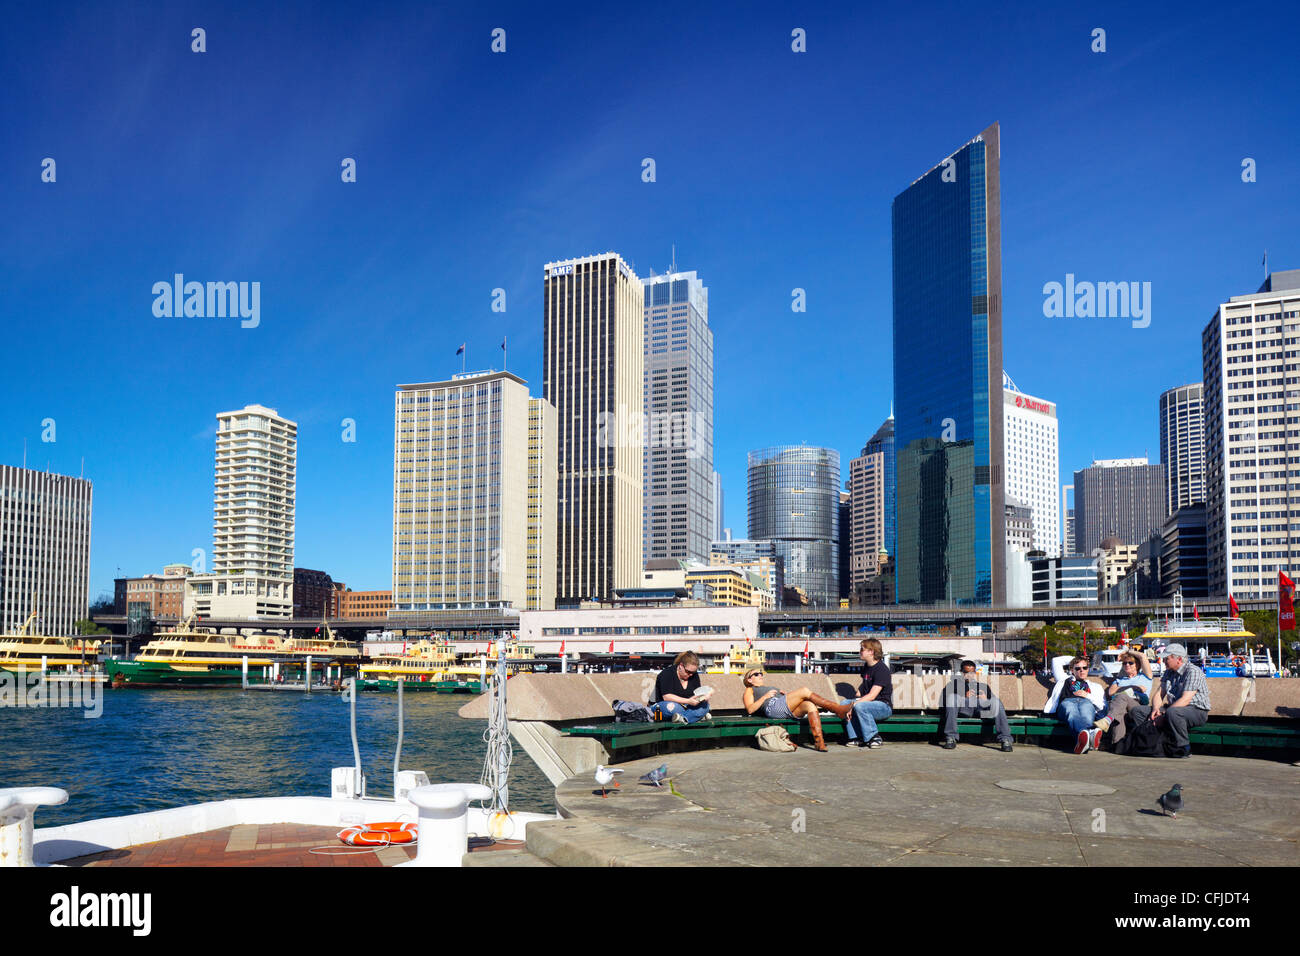 People relaxing at Sydney Cove, Australia - Stock Image